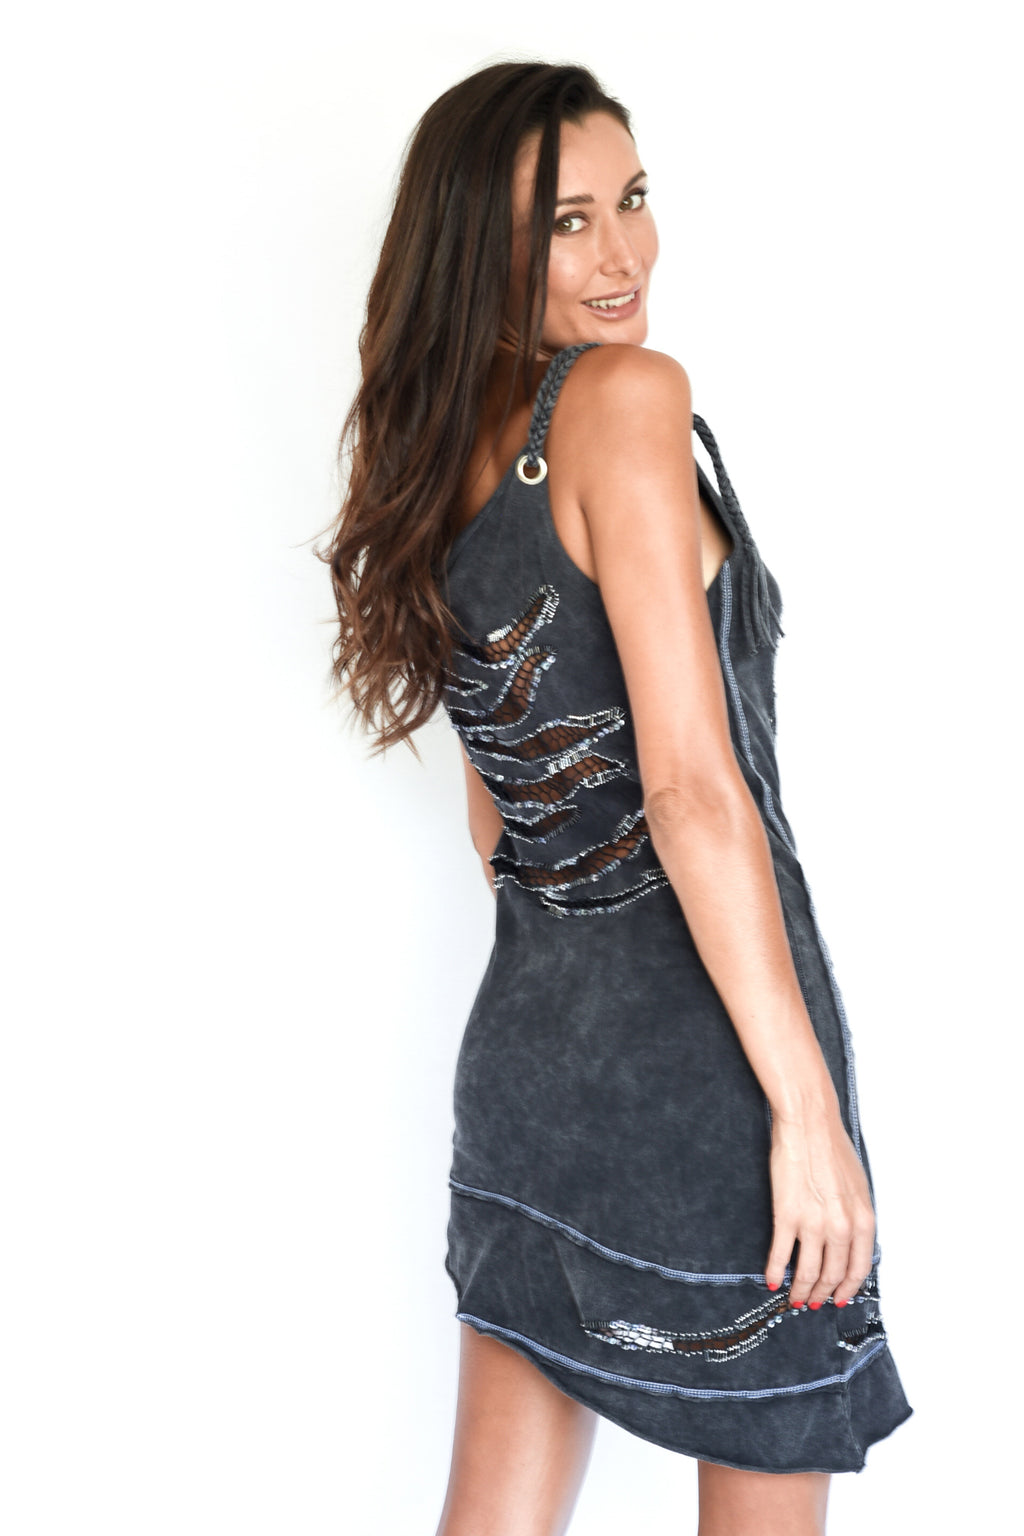 'PAMELA' CUT OUT DRESS - CHARCOAL